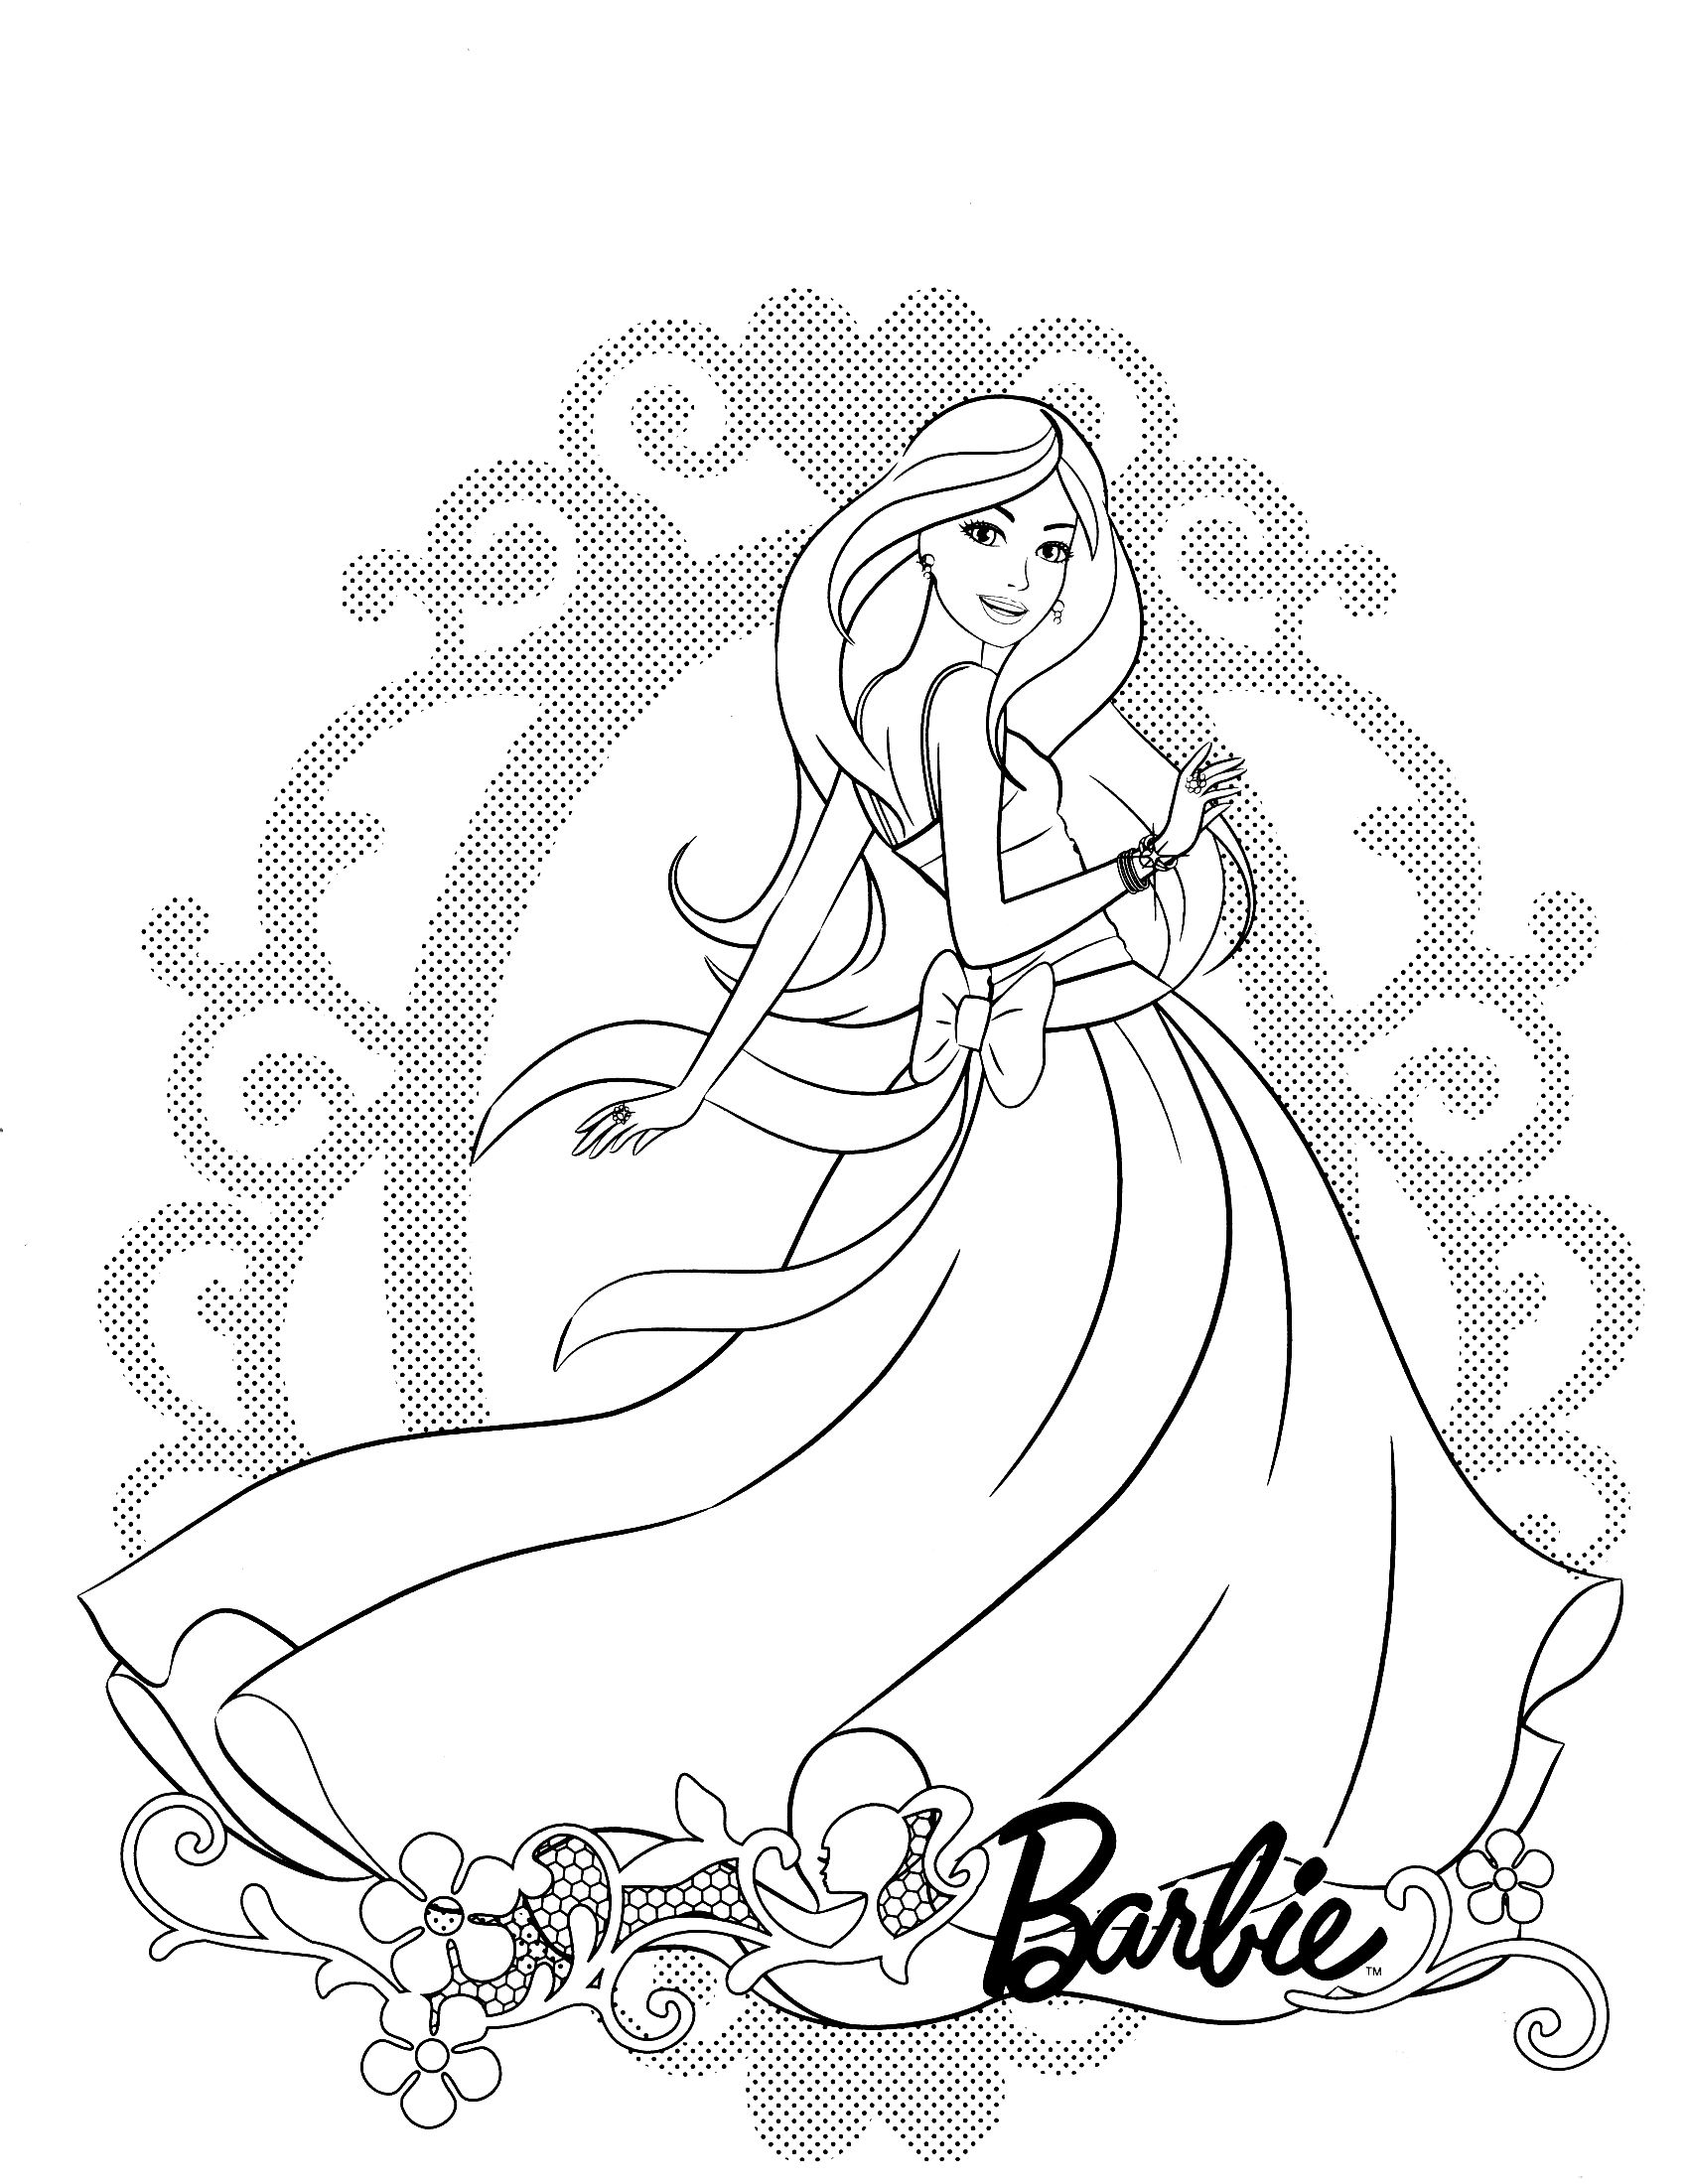 71 Winx Ideas Barbie Coloring Pages